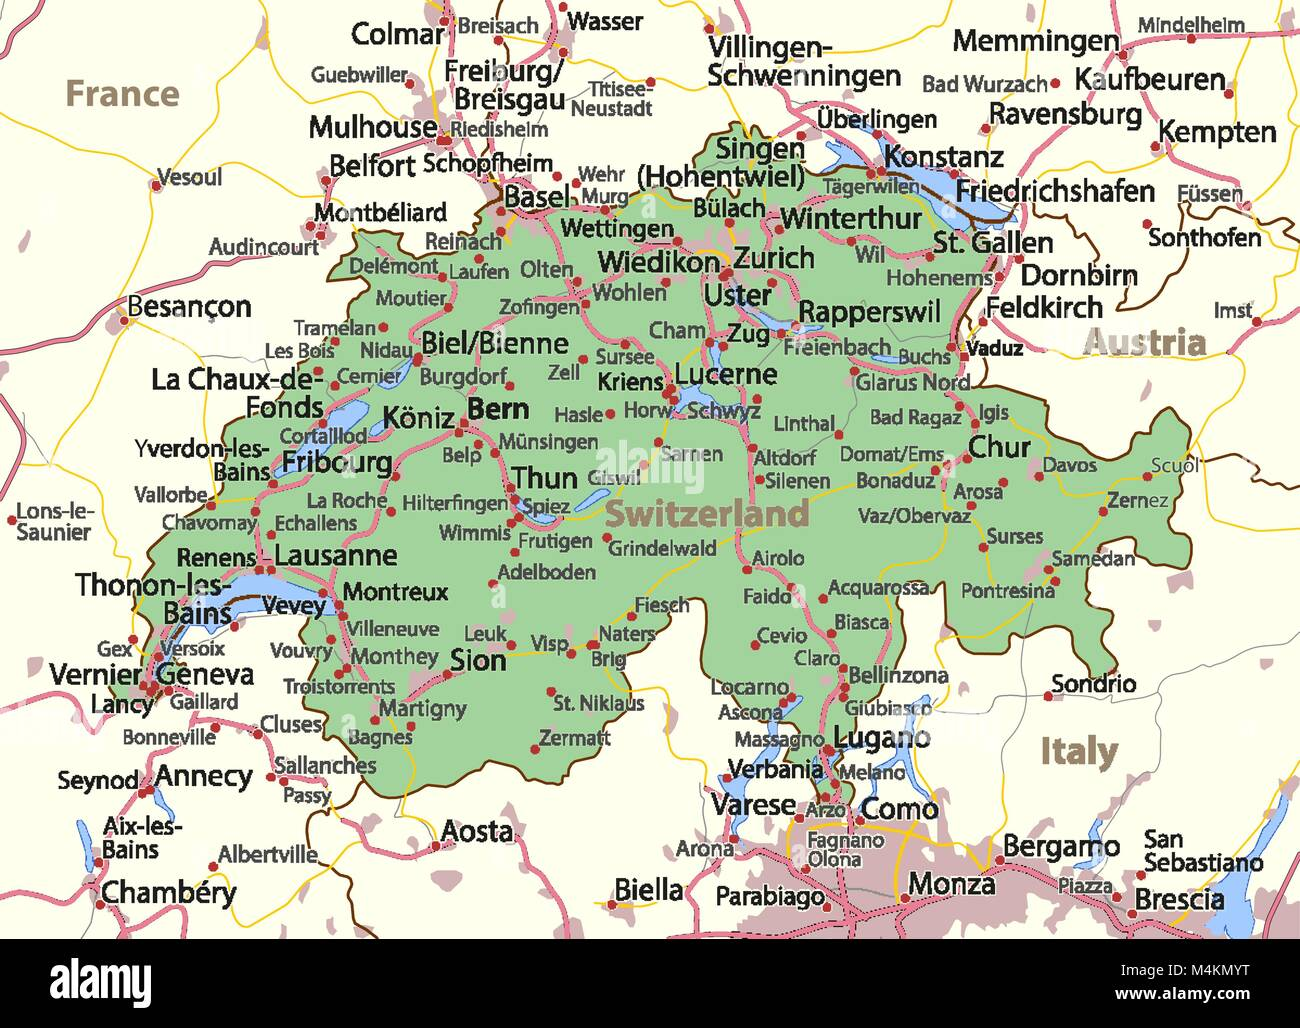 Map of Switzerland. Shows country borders, urban areas, place names ...